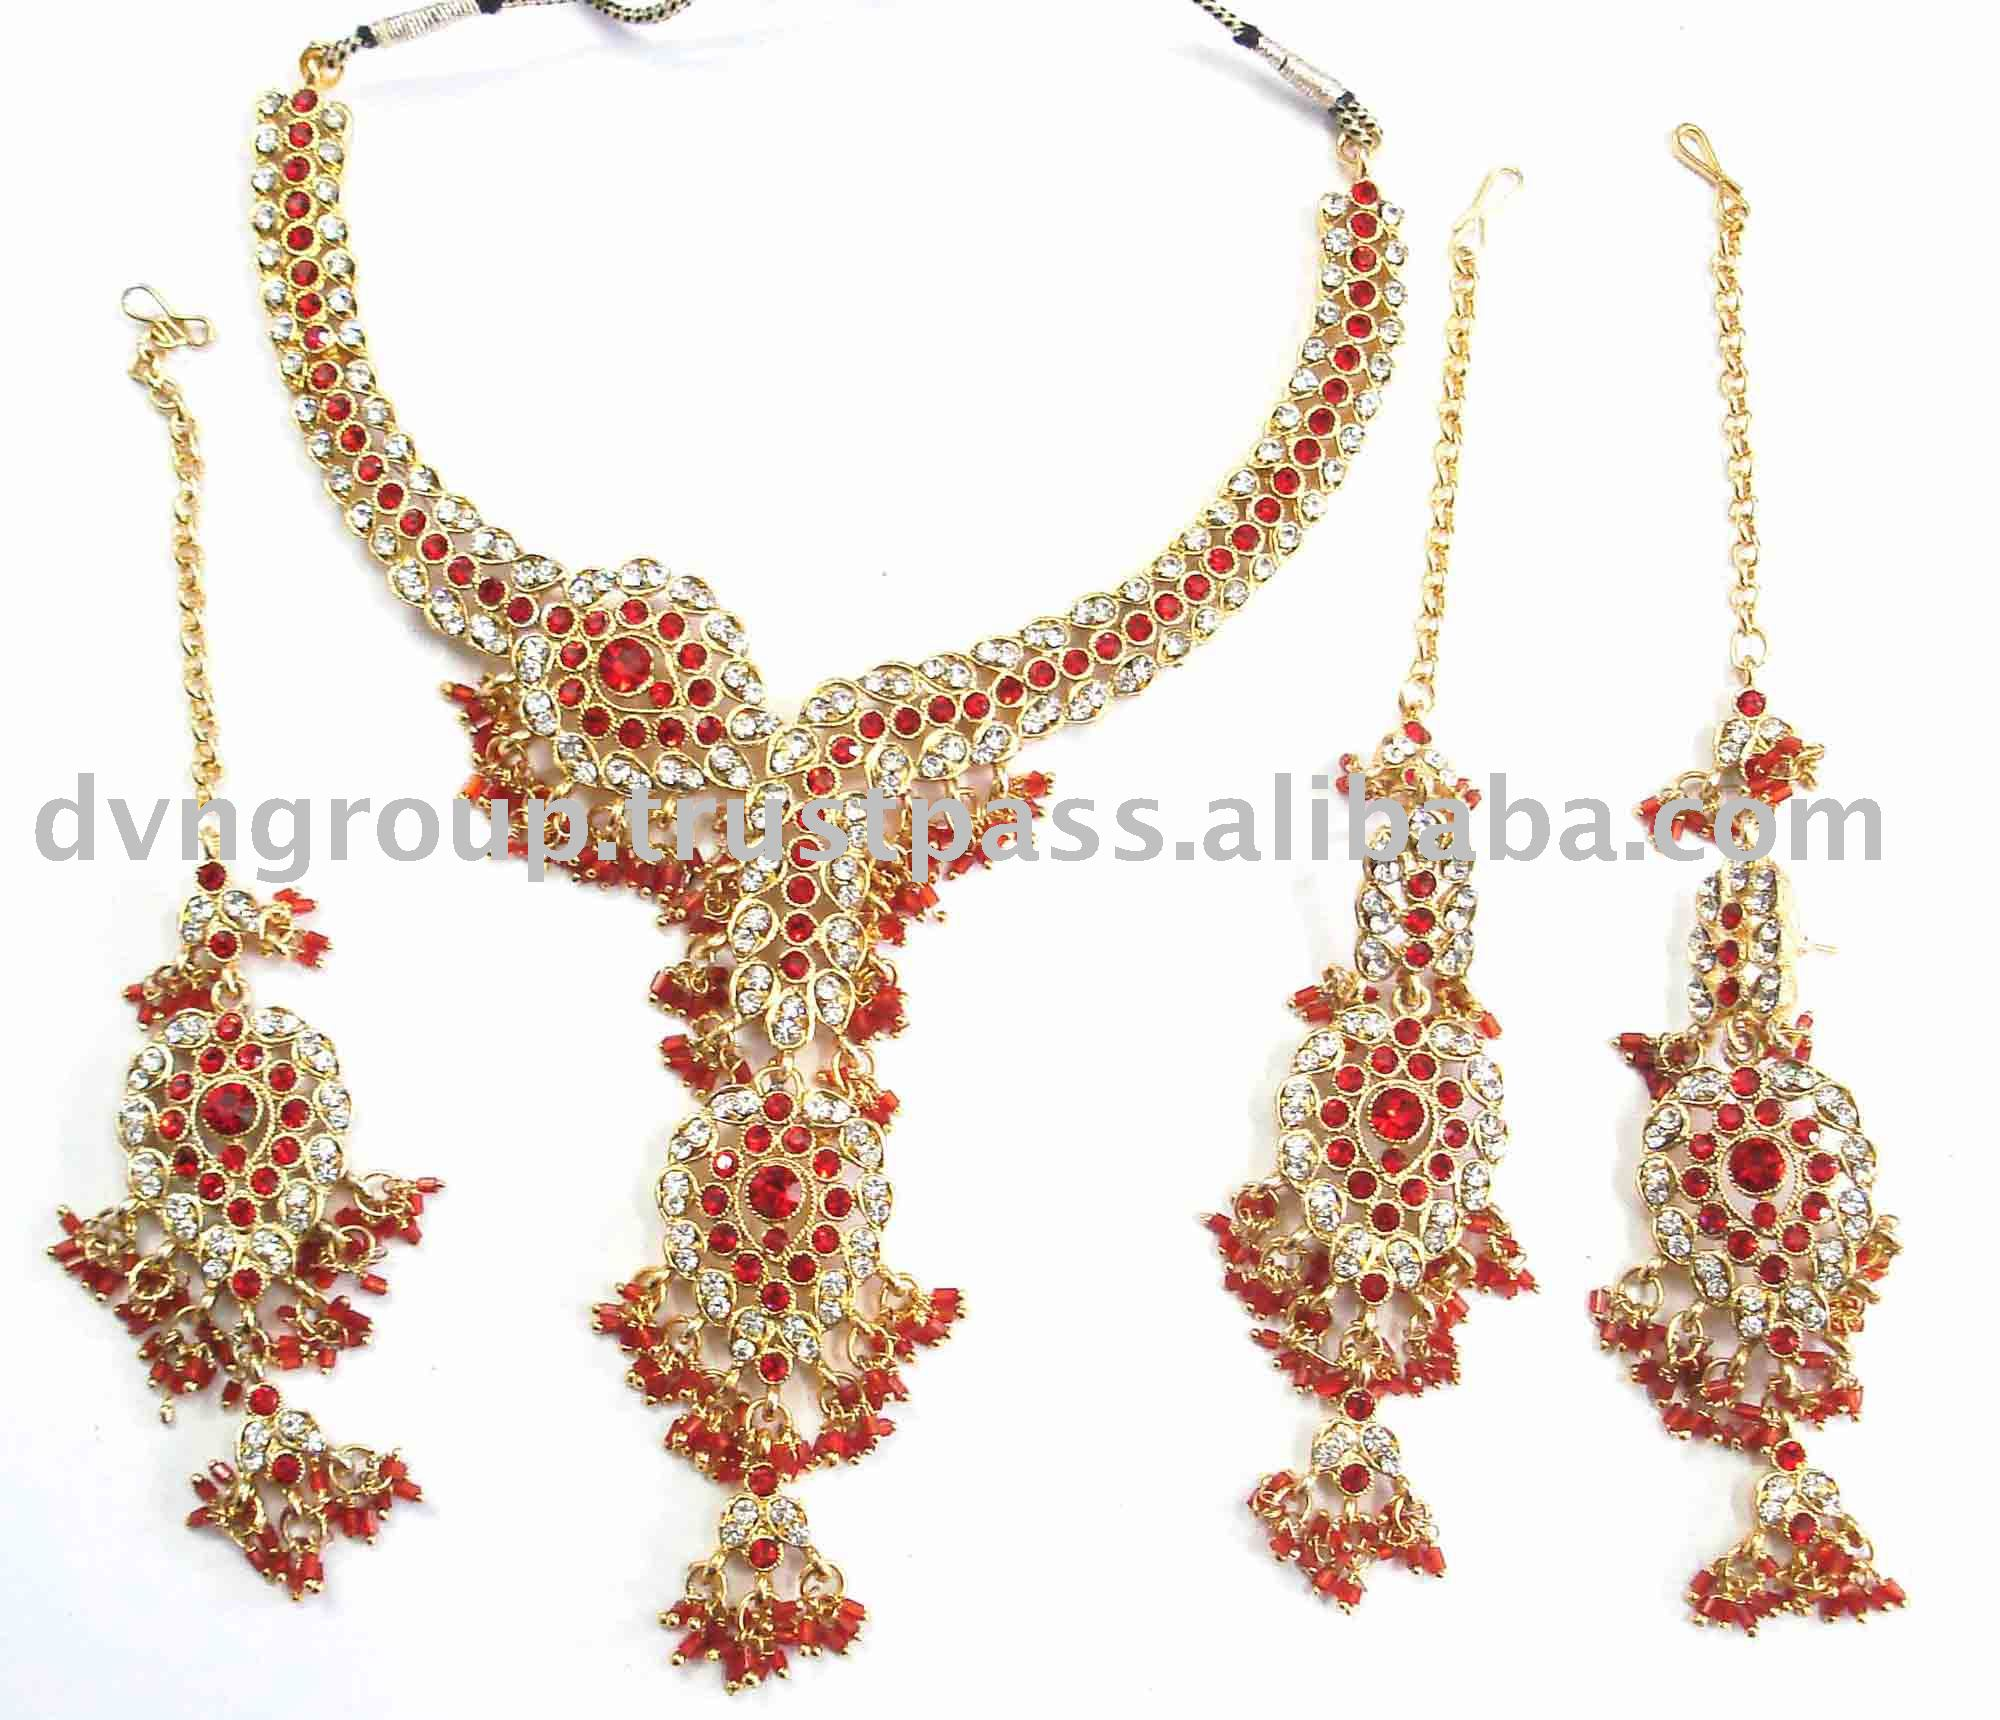 manufacturers infinity suppliers jewellery mixed at fashion showroom indian com alibaba and buying wholesale jewelry